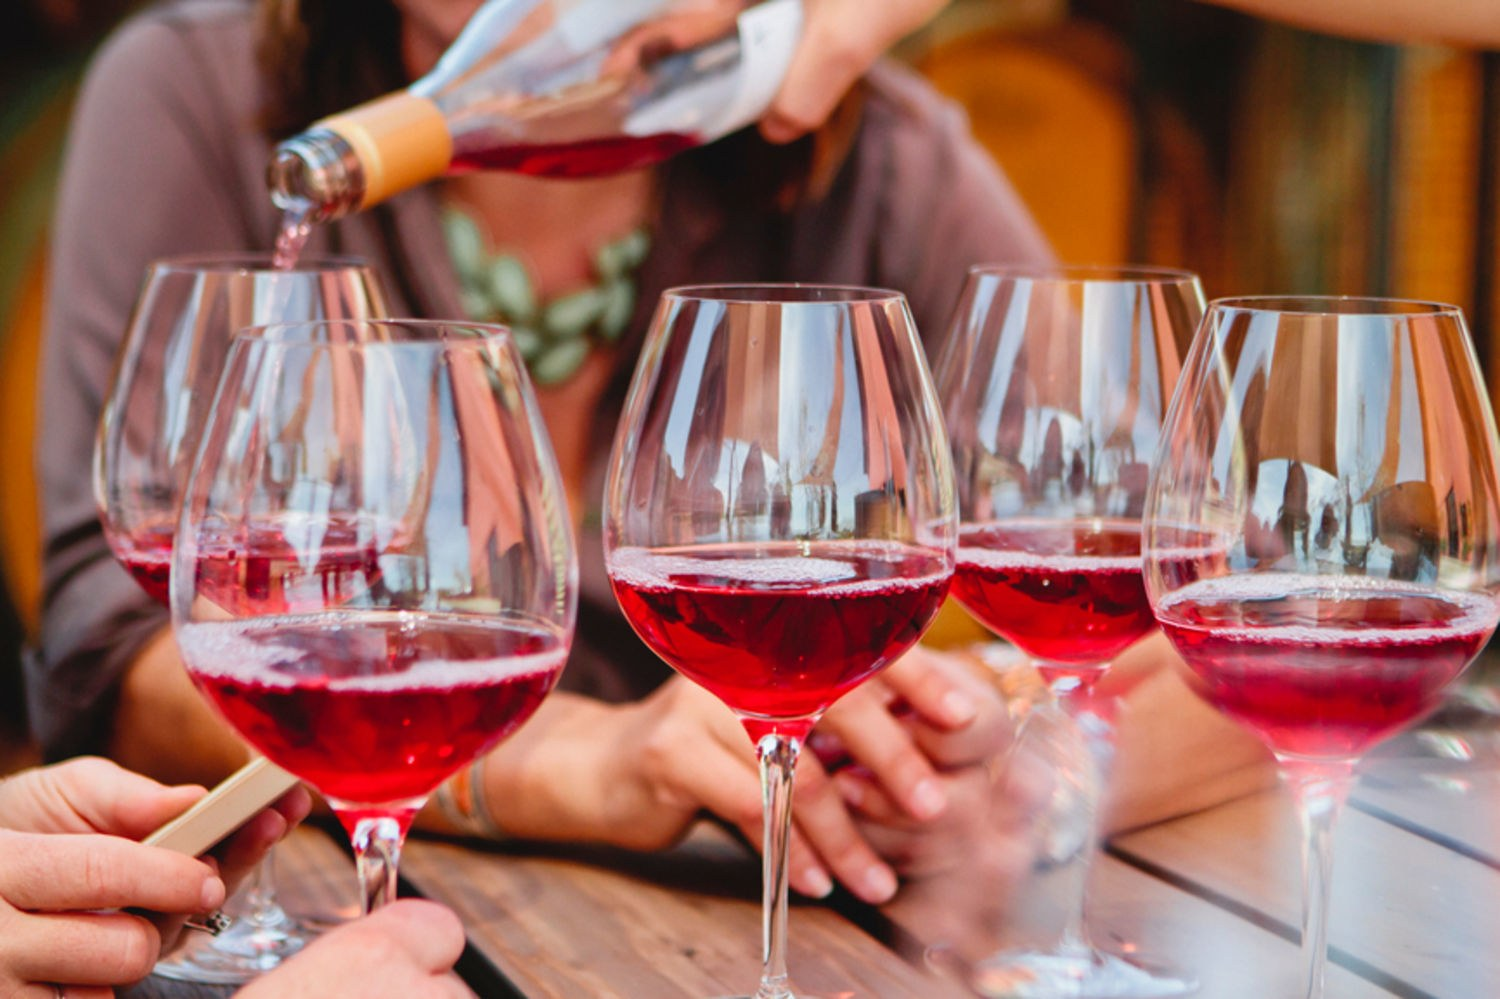 How to taste and smell wine : Taberna Wine Academy